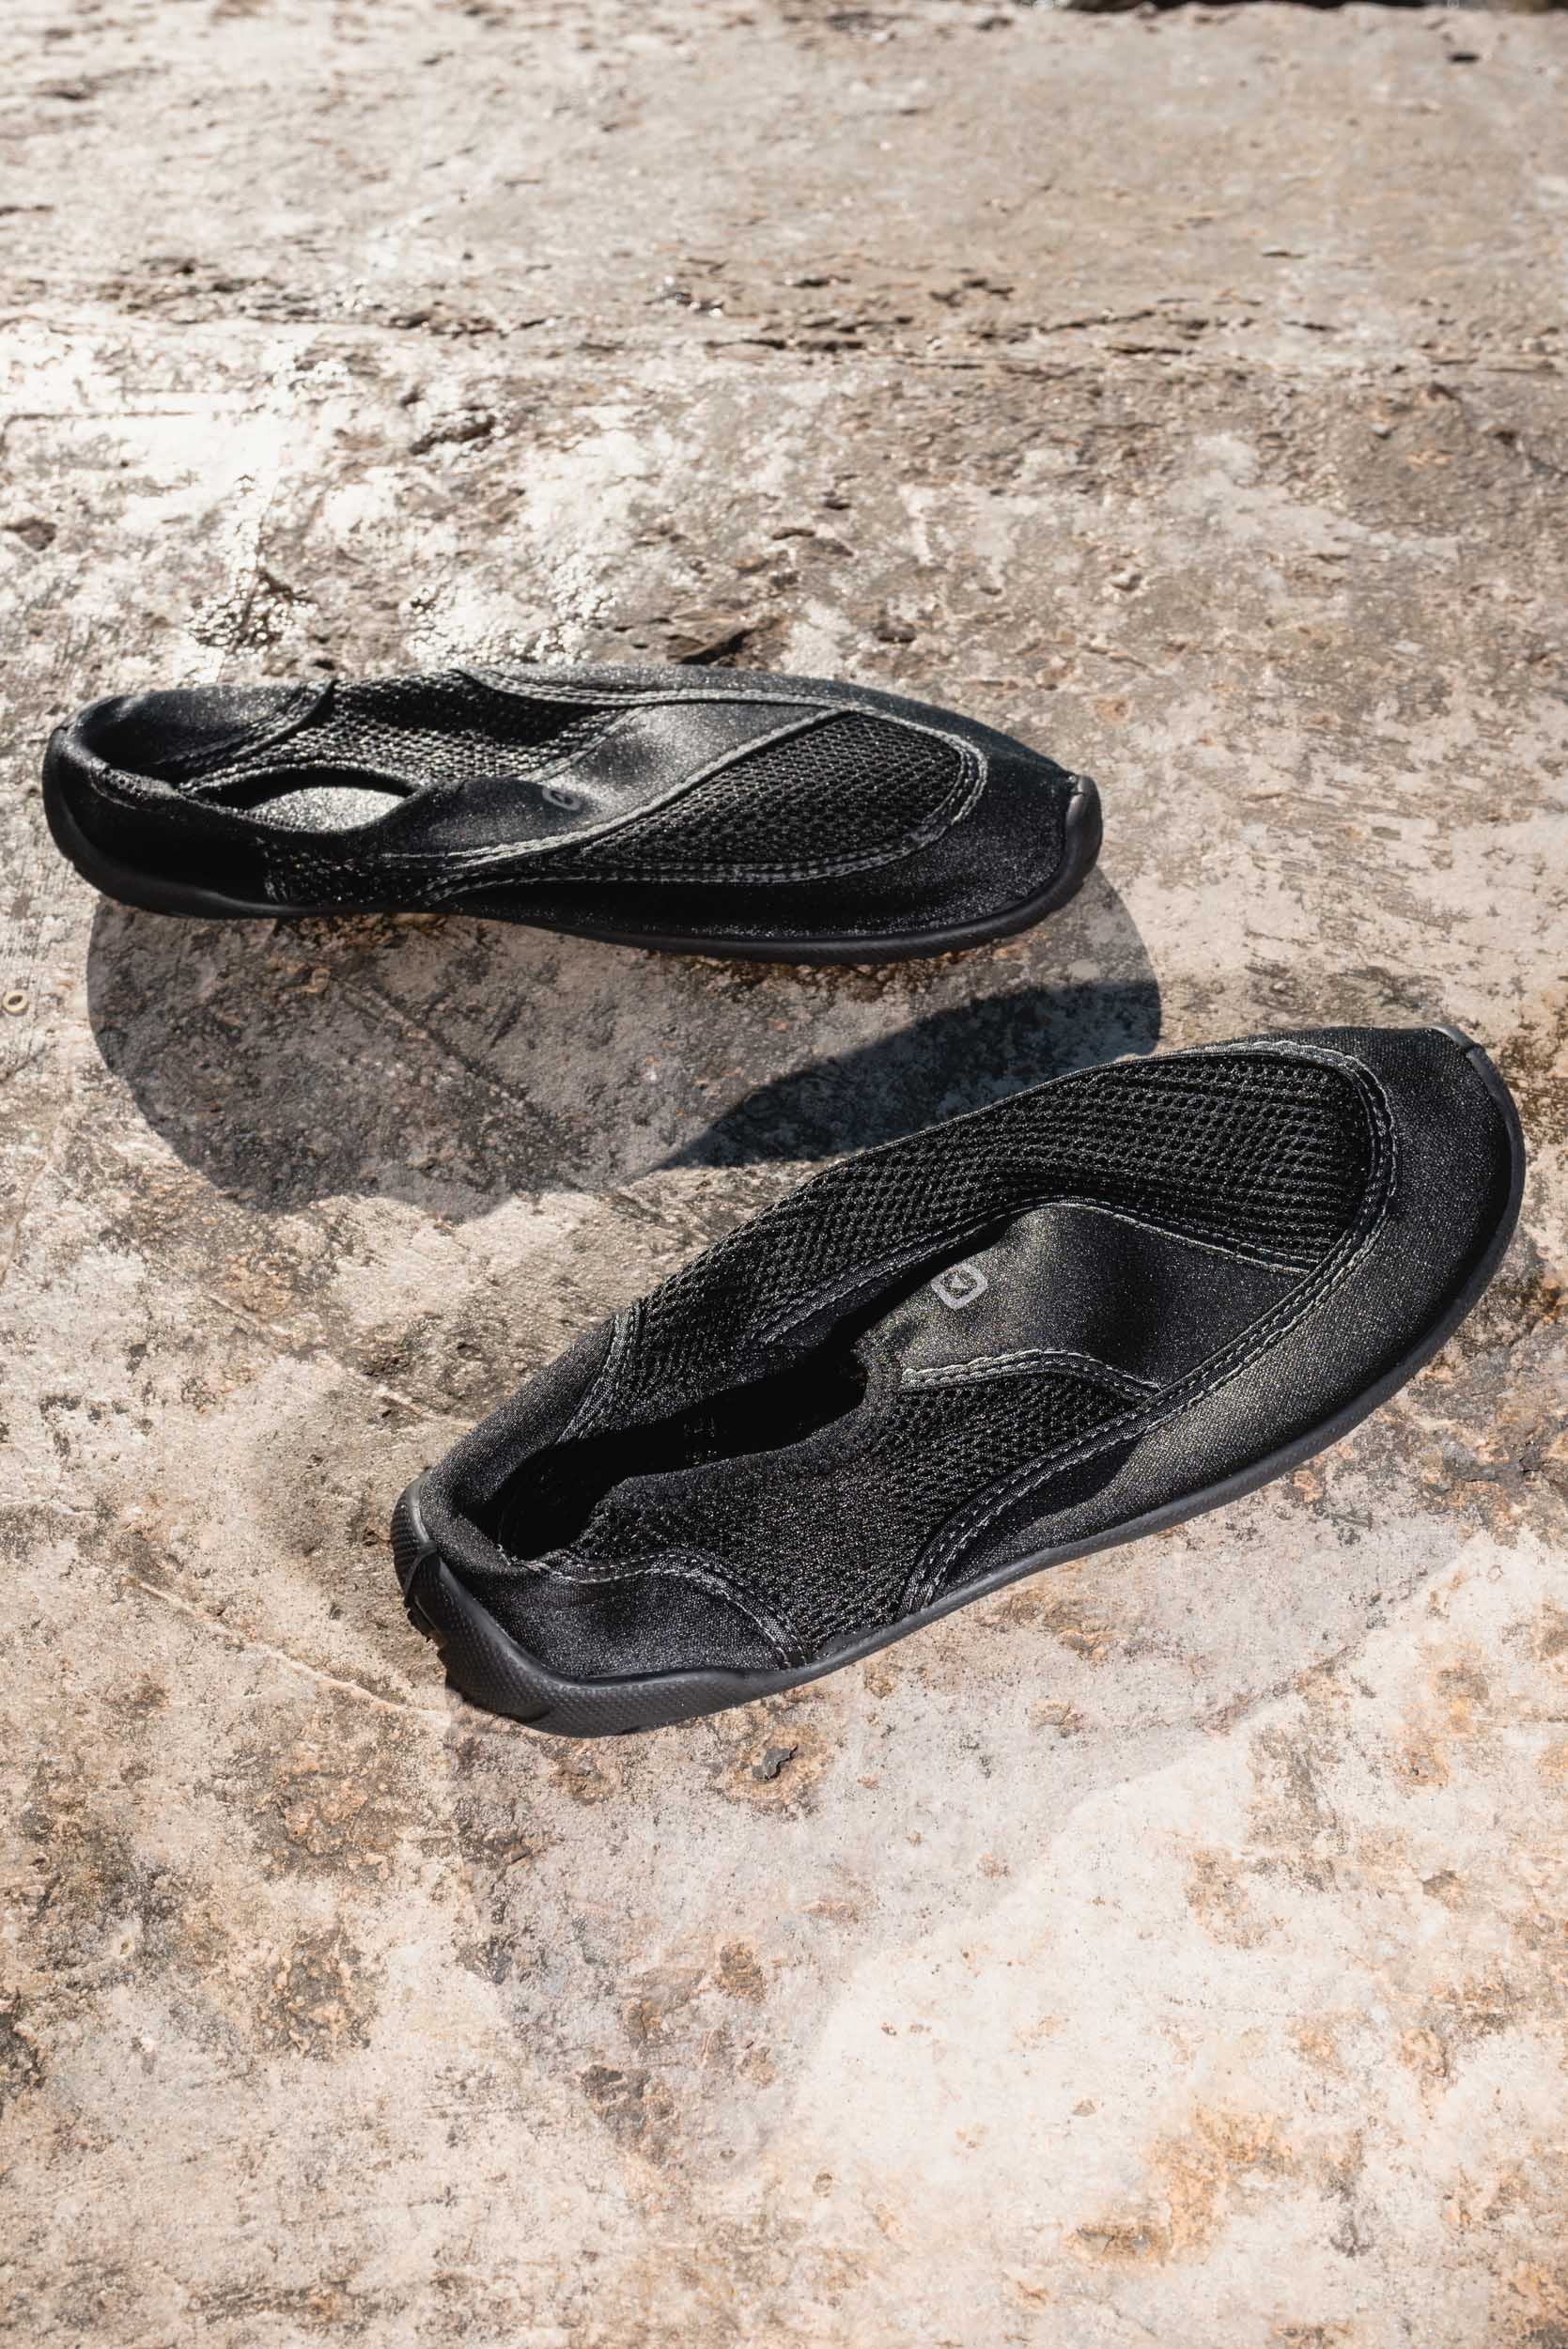 Wet water shoes on cement